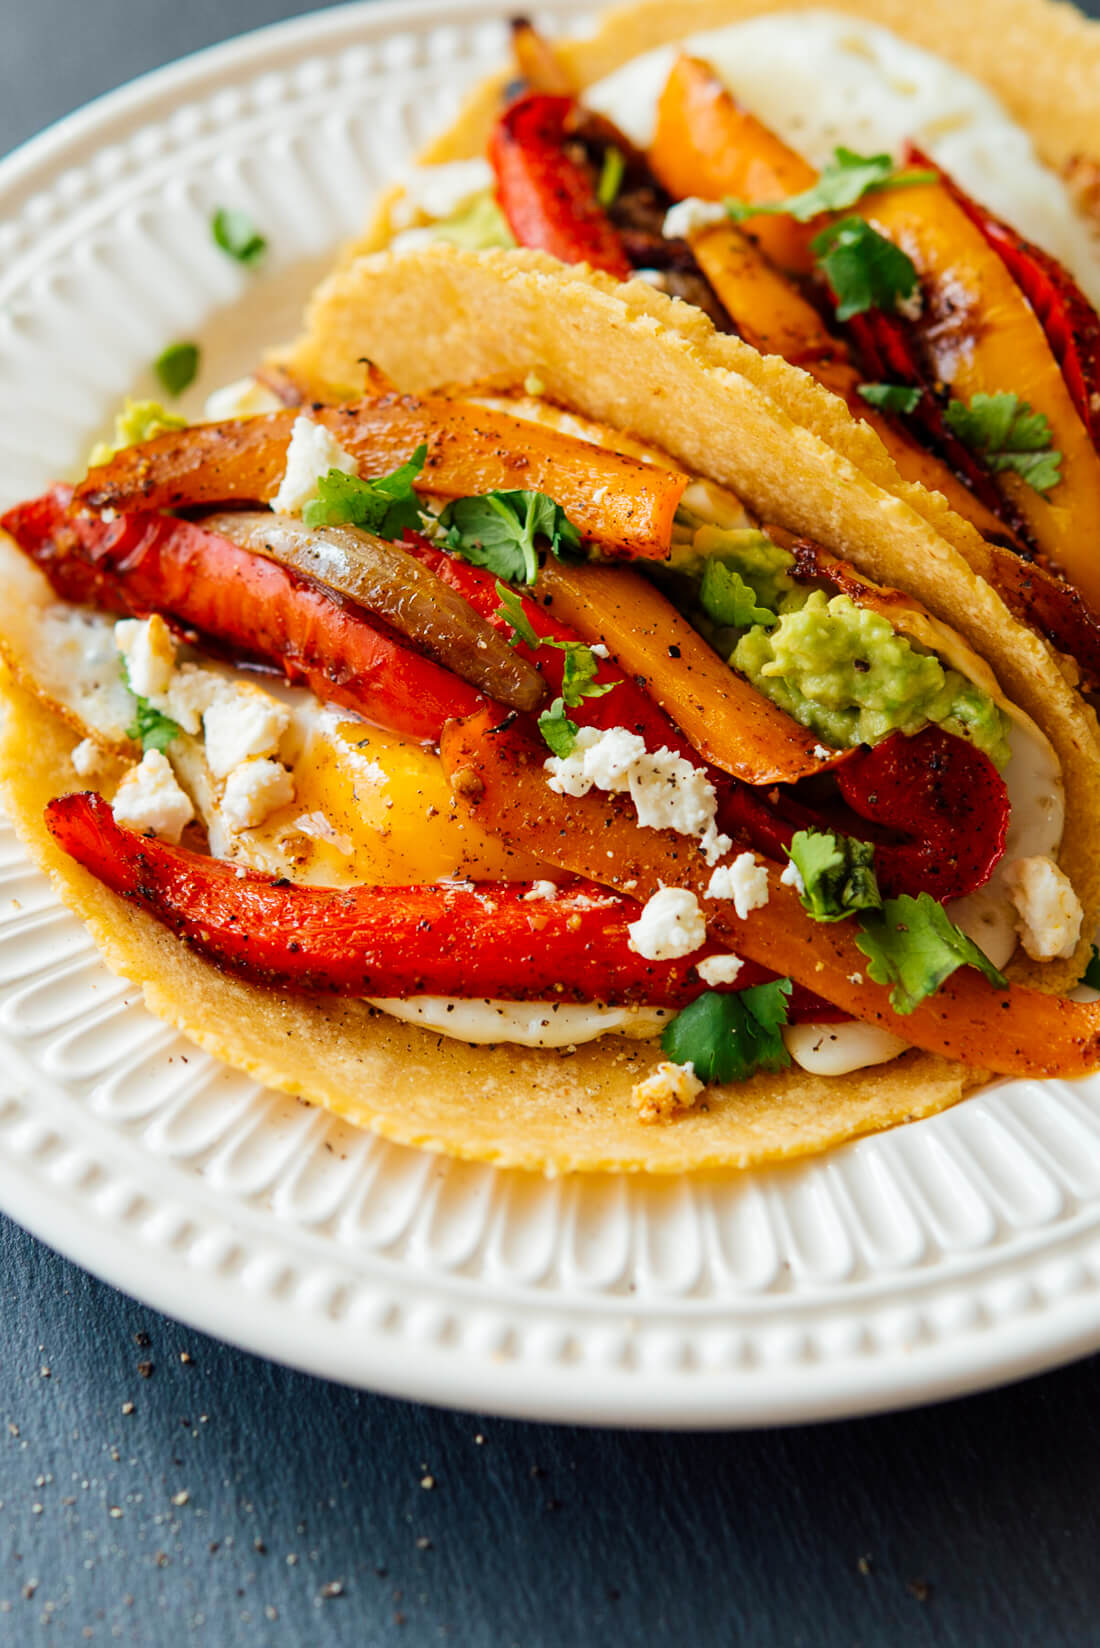 breakfast fajitas from love real food cookbook